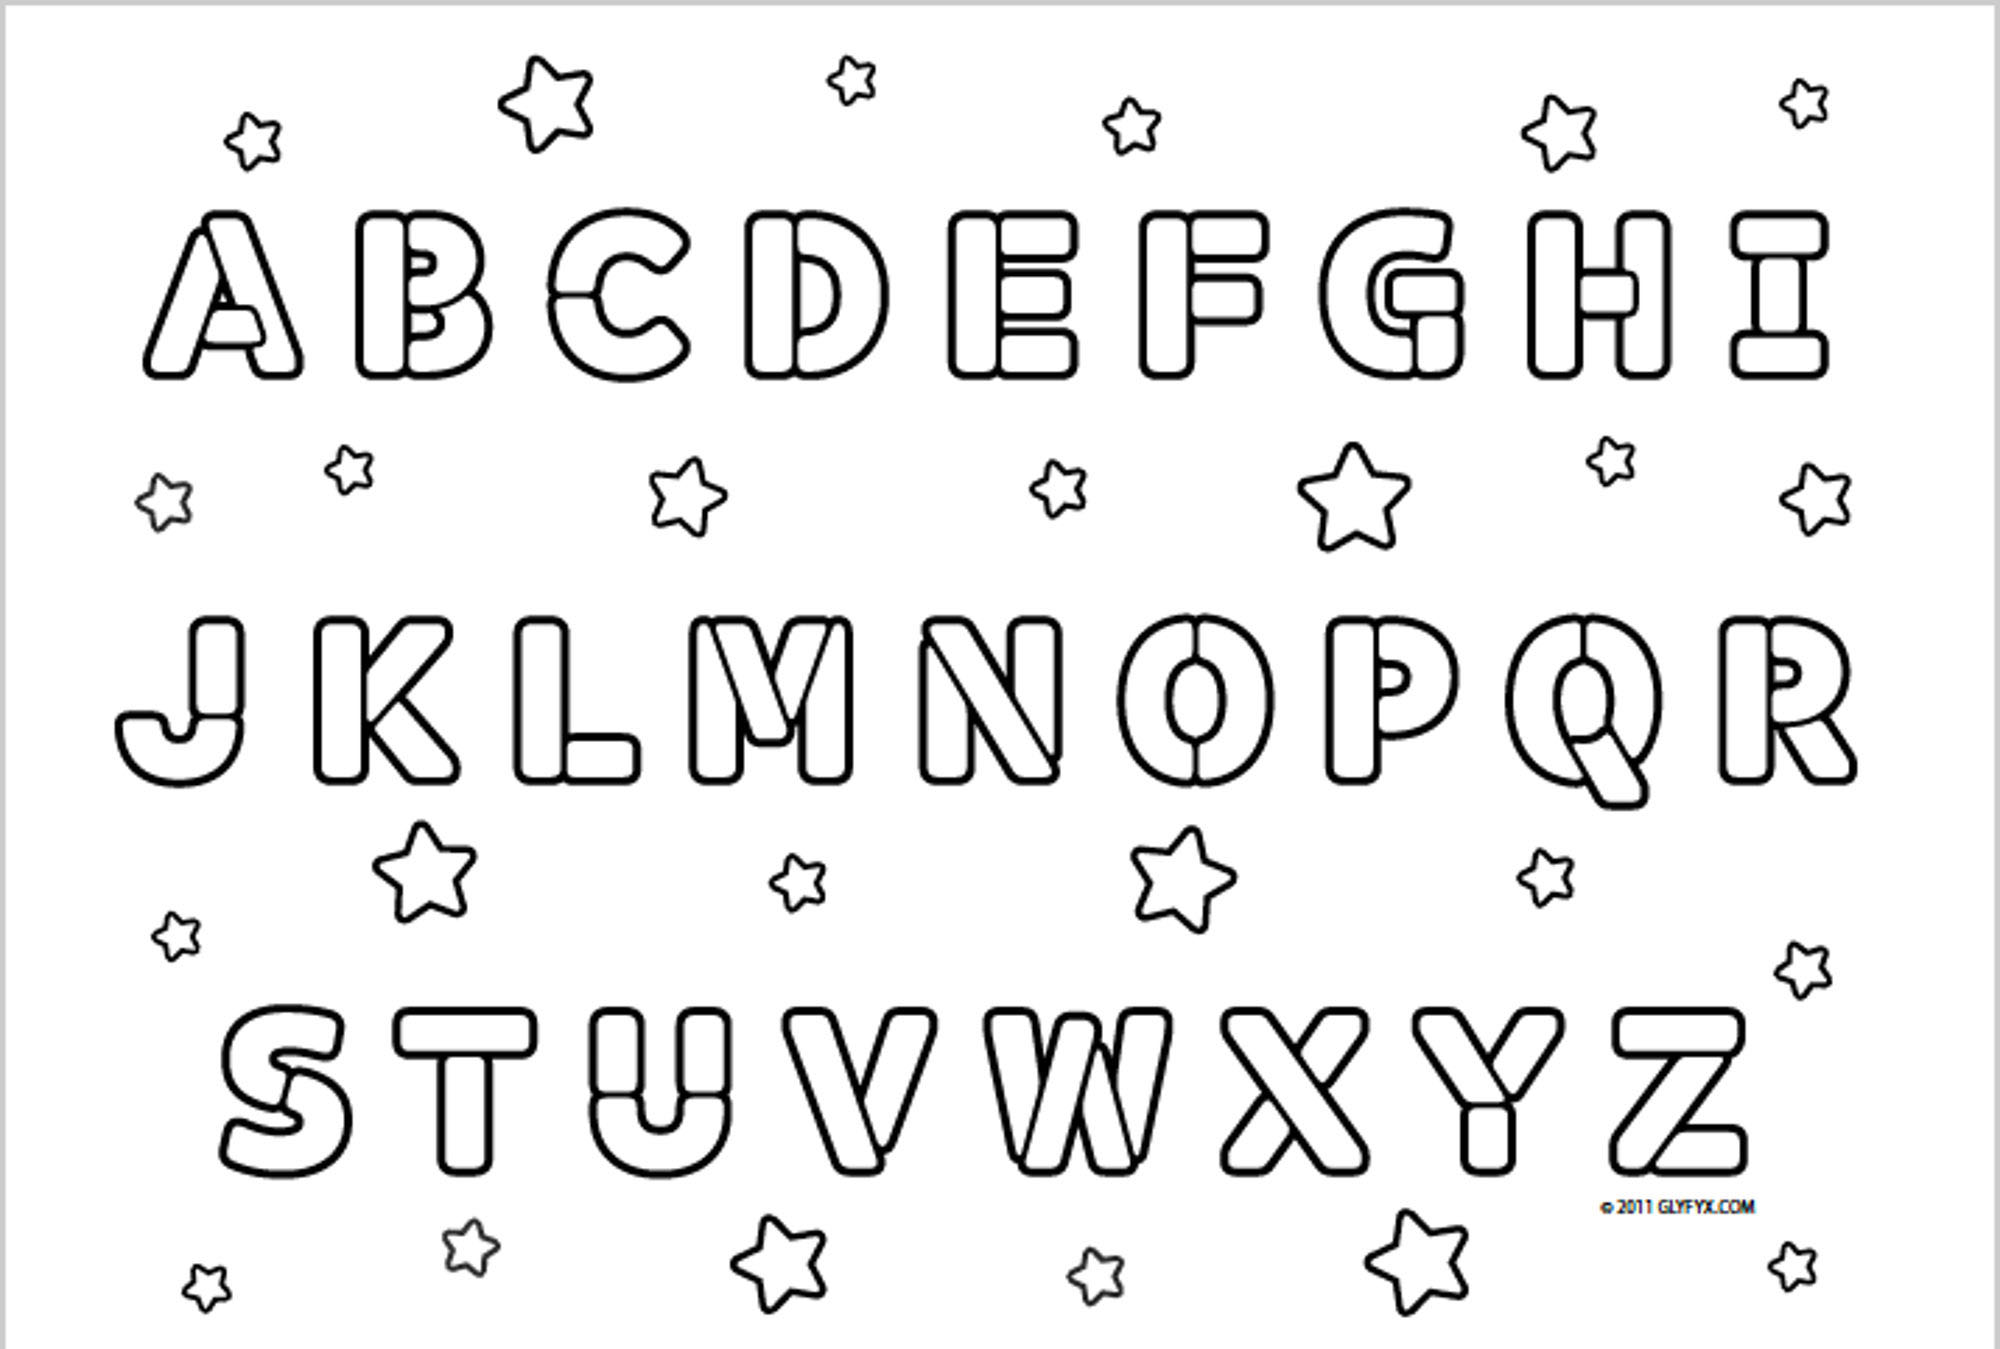 coloring sheet alphabet coloring pages be creative with abc coloring pages alphabet coloring pages sheet coloring